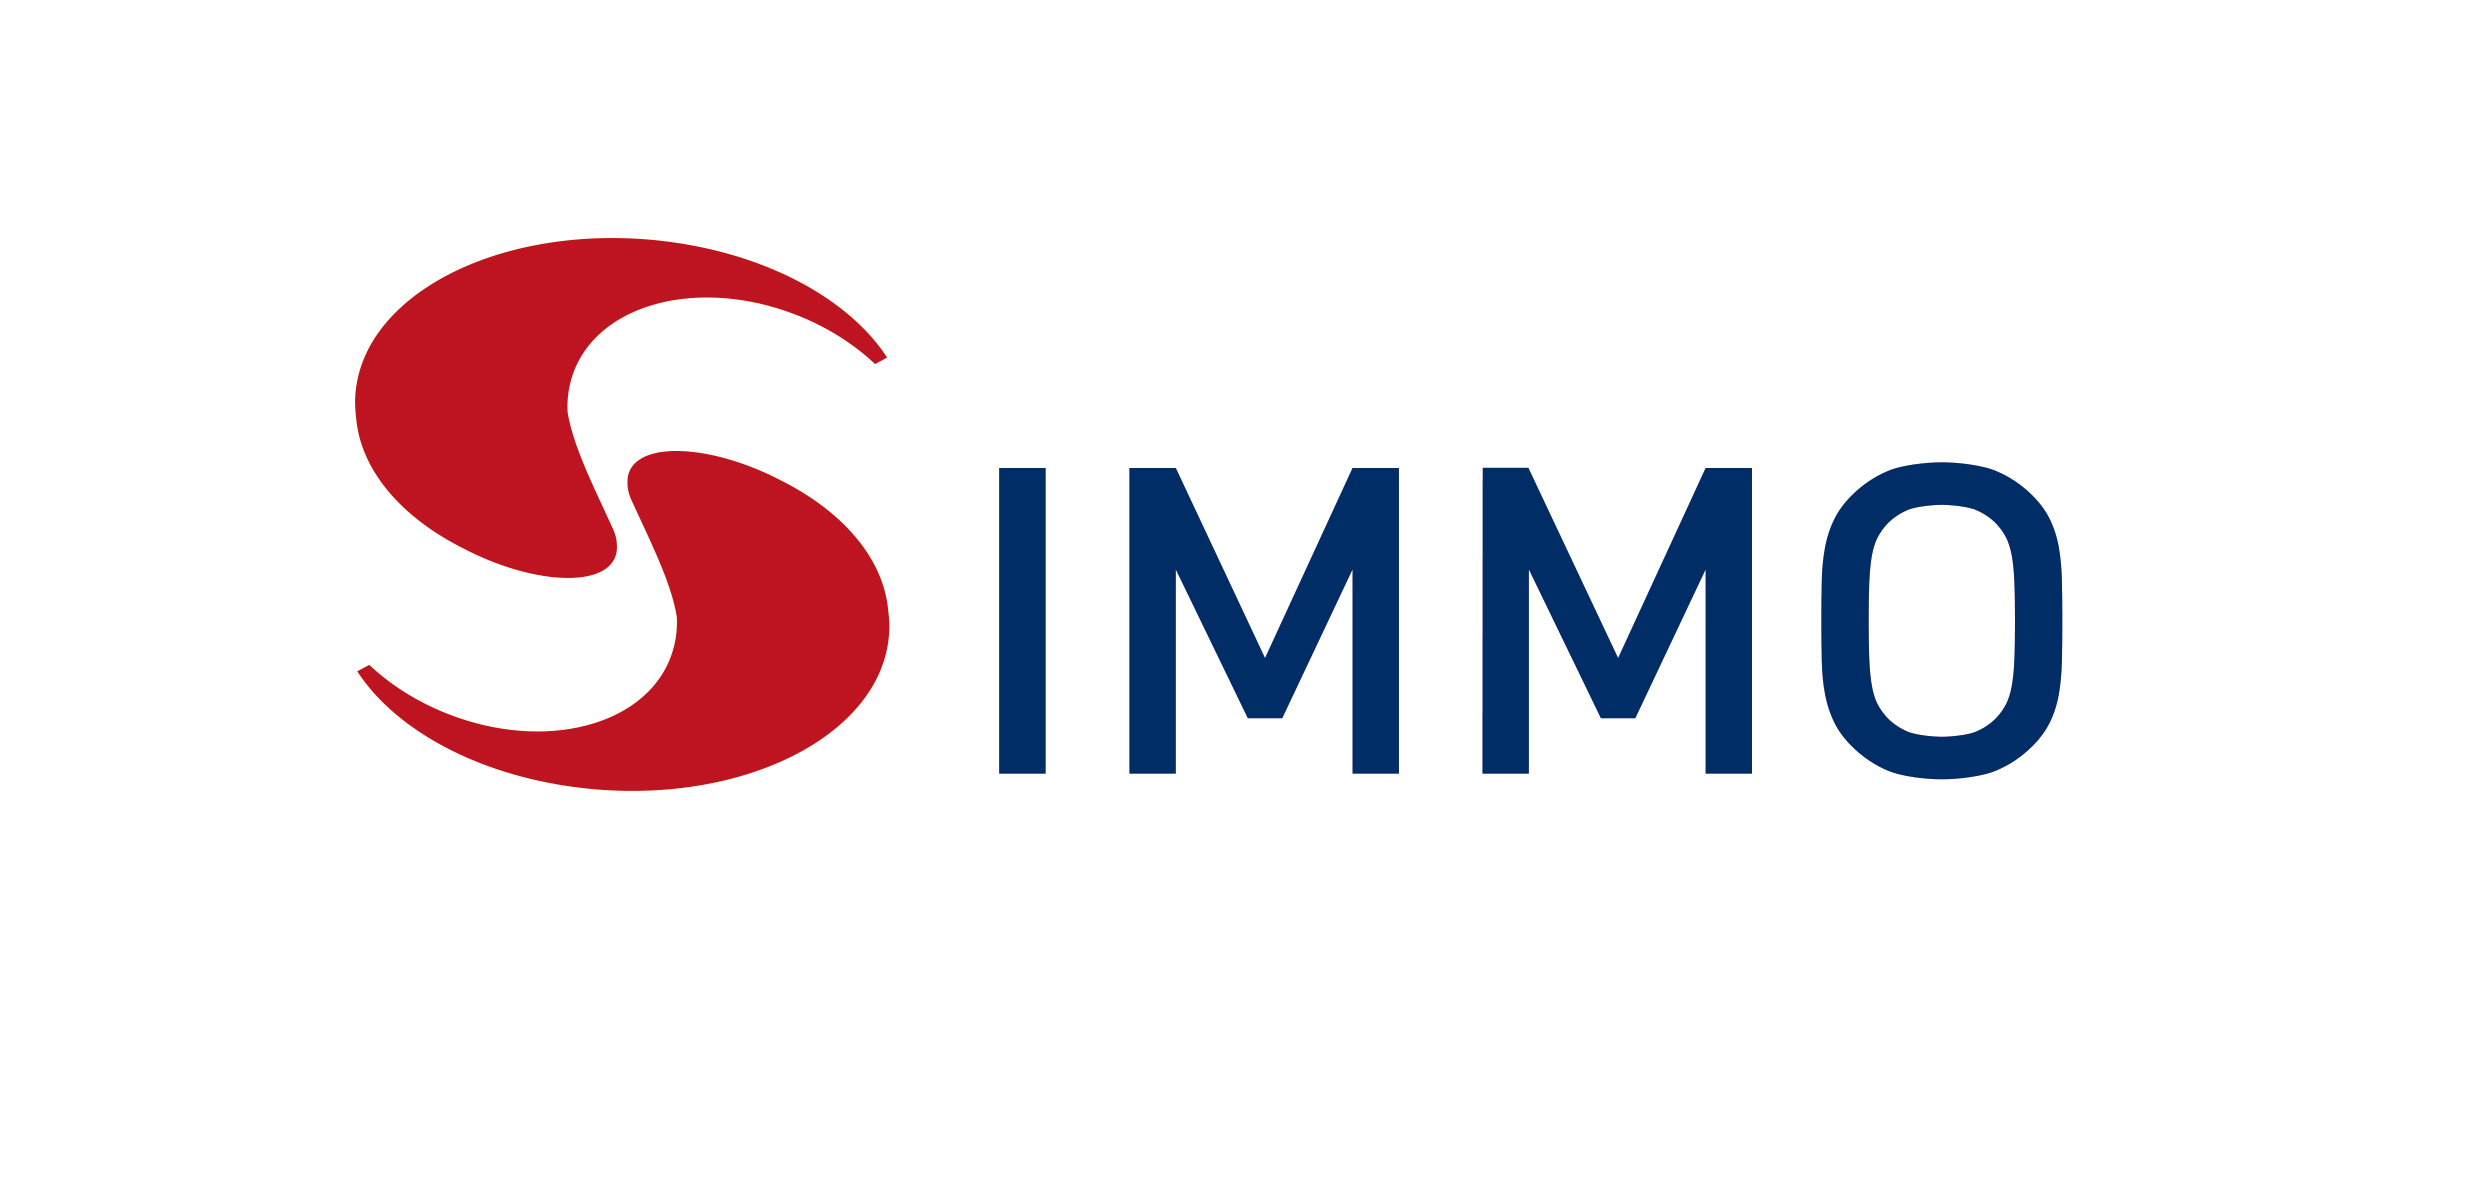 S-Immo_Logo_AT_4c